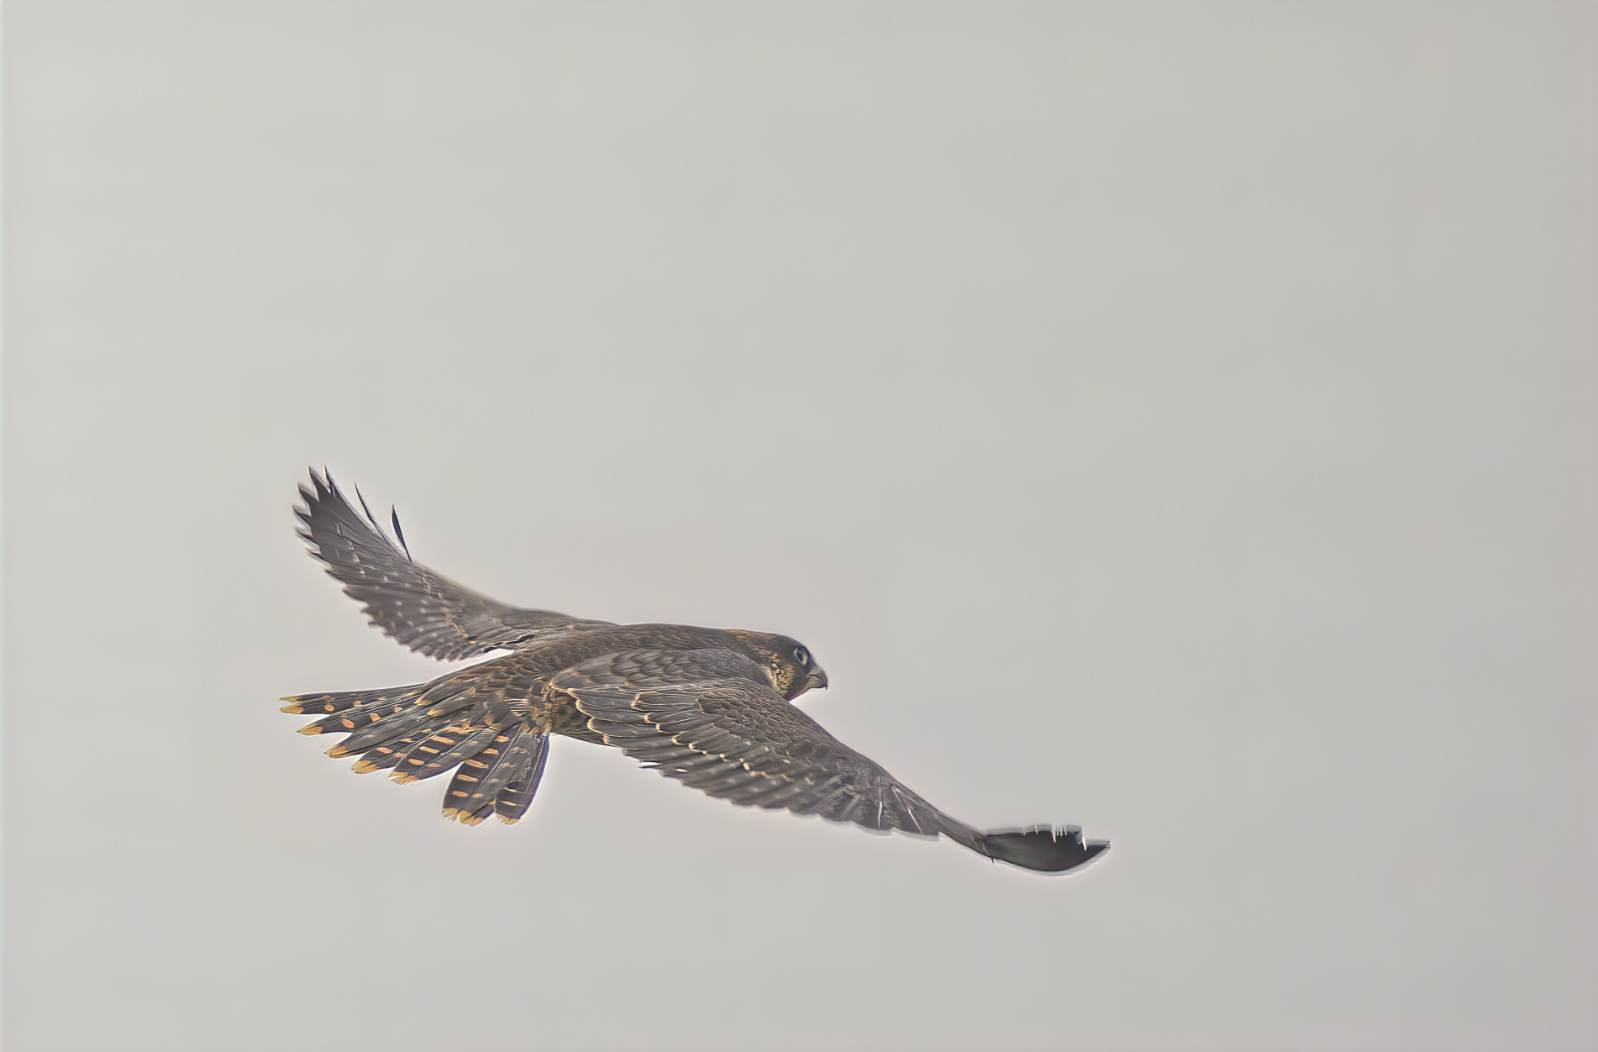 Young Peregrine falcon's one of first flights...